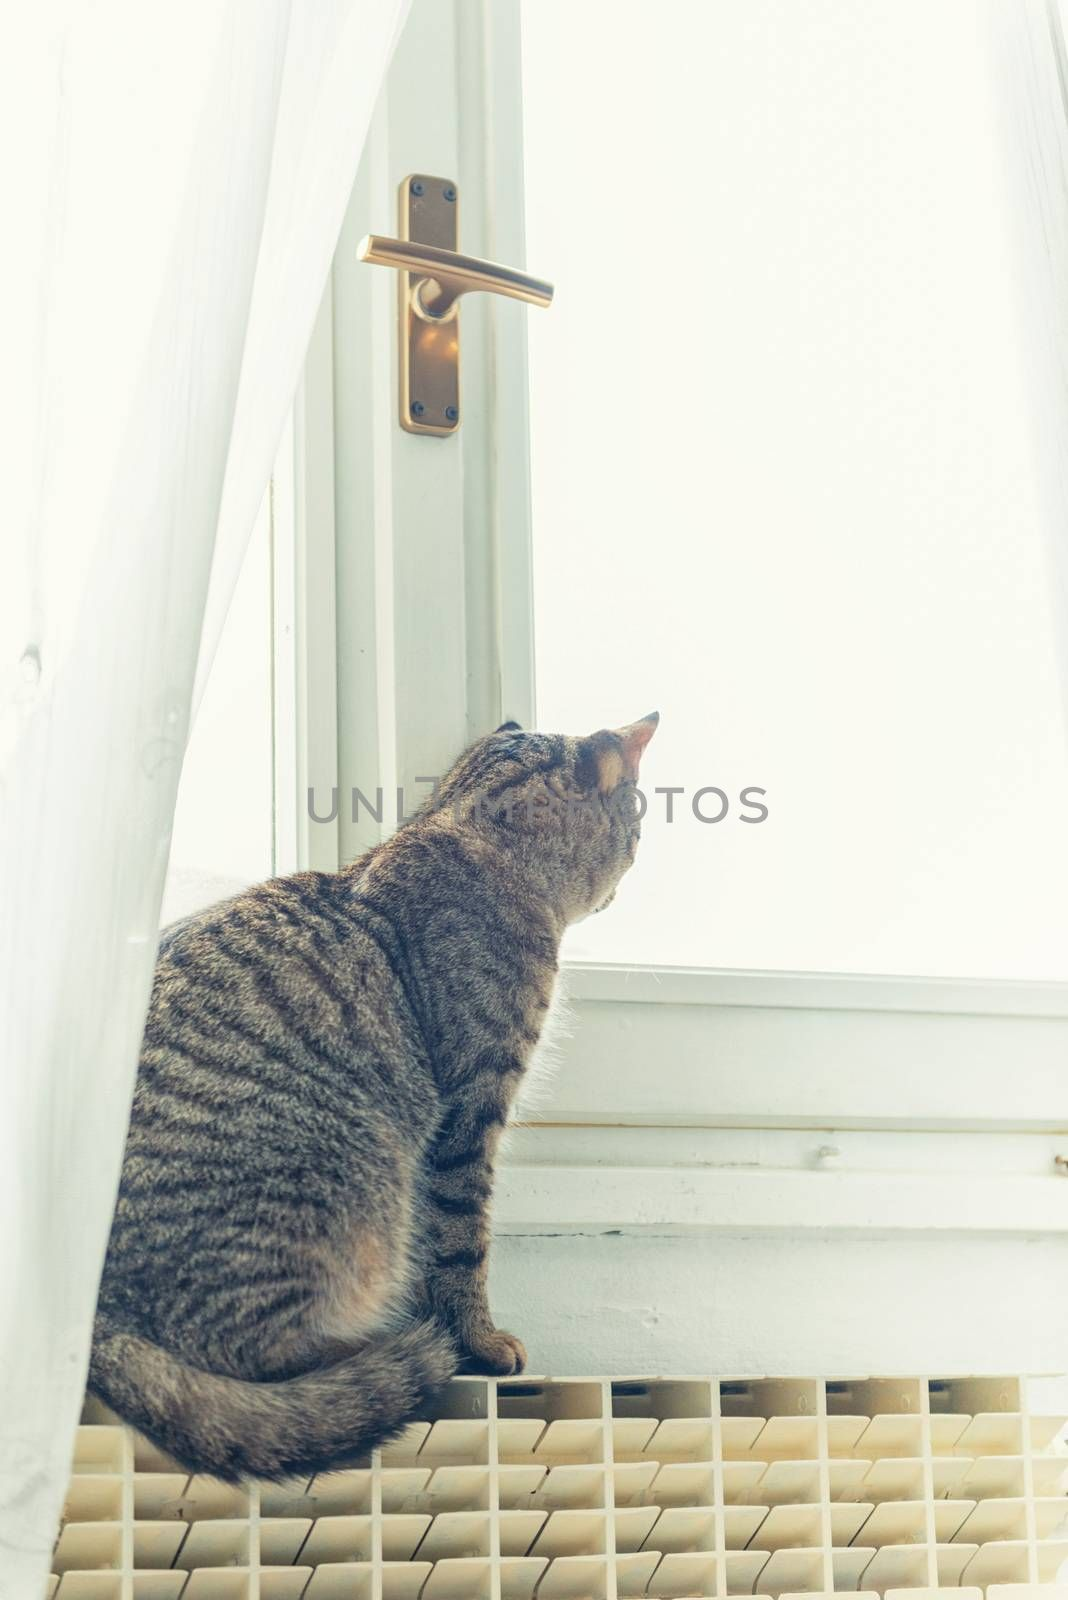 Tabby cat with yellow eyes looking to the windows